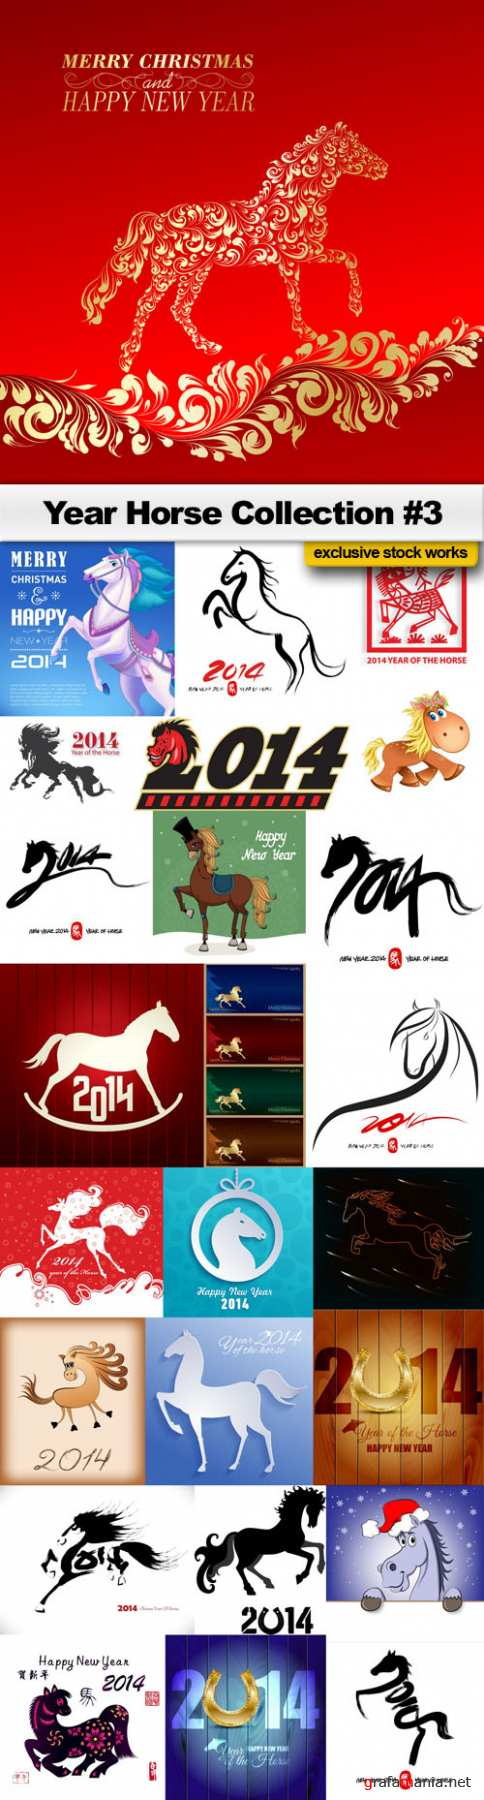 Year Horse Collection #3 - 2014 - 25 EPS